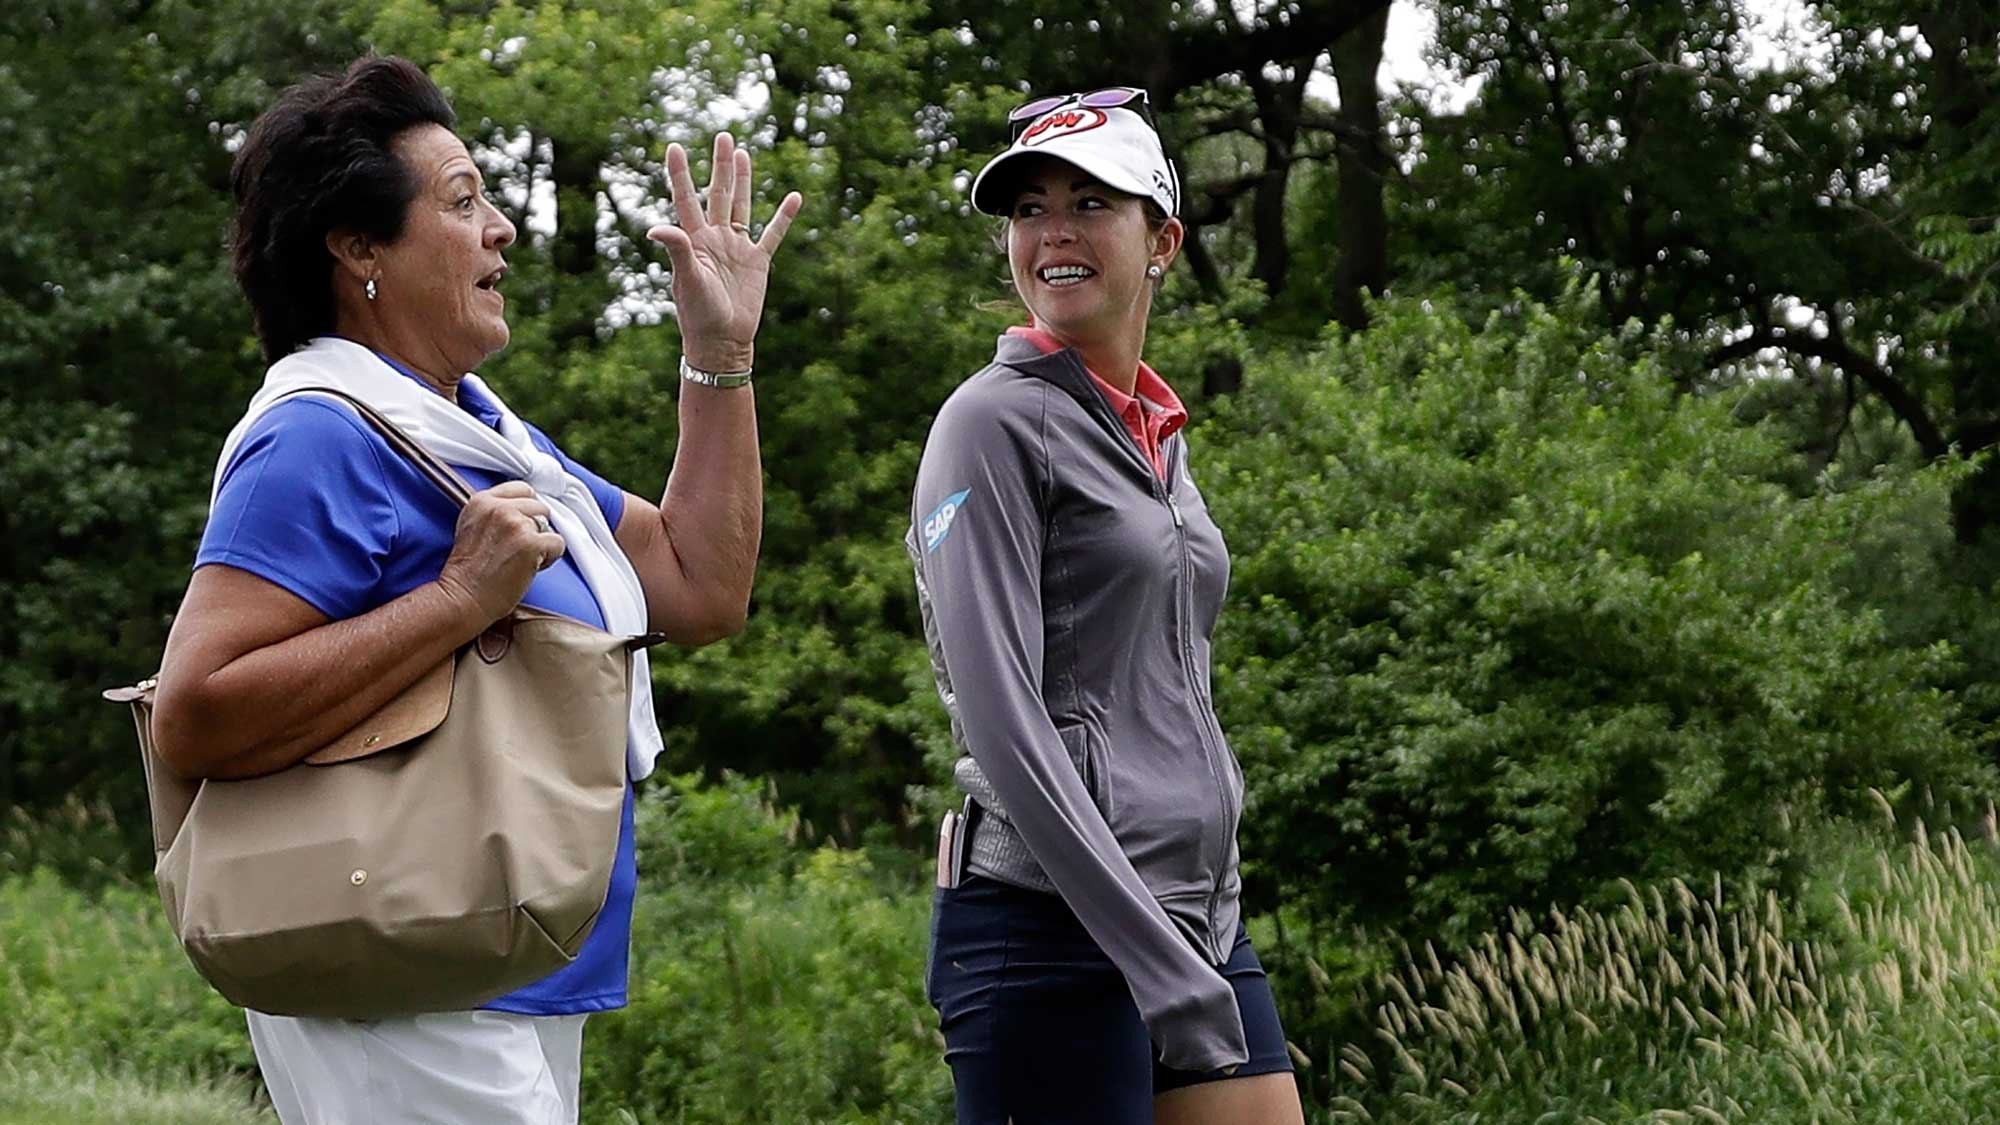 Nancy Lopez and Paula Creamer walk off the third tee box during a practice round prior to the 2017 KPMG PGA Championship